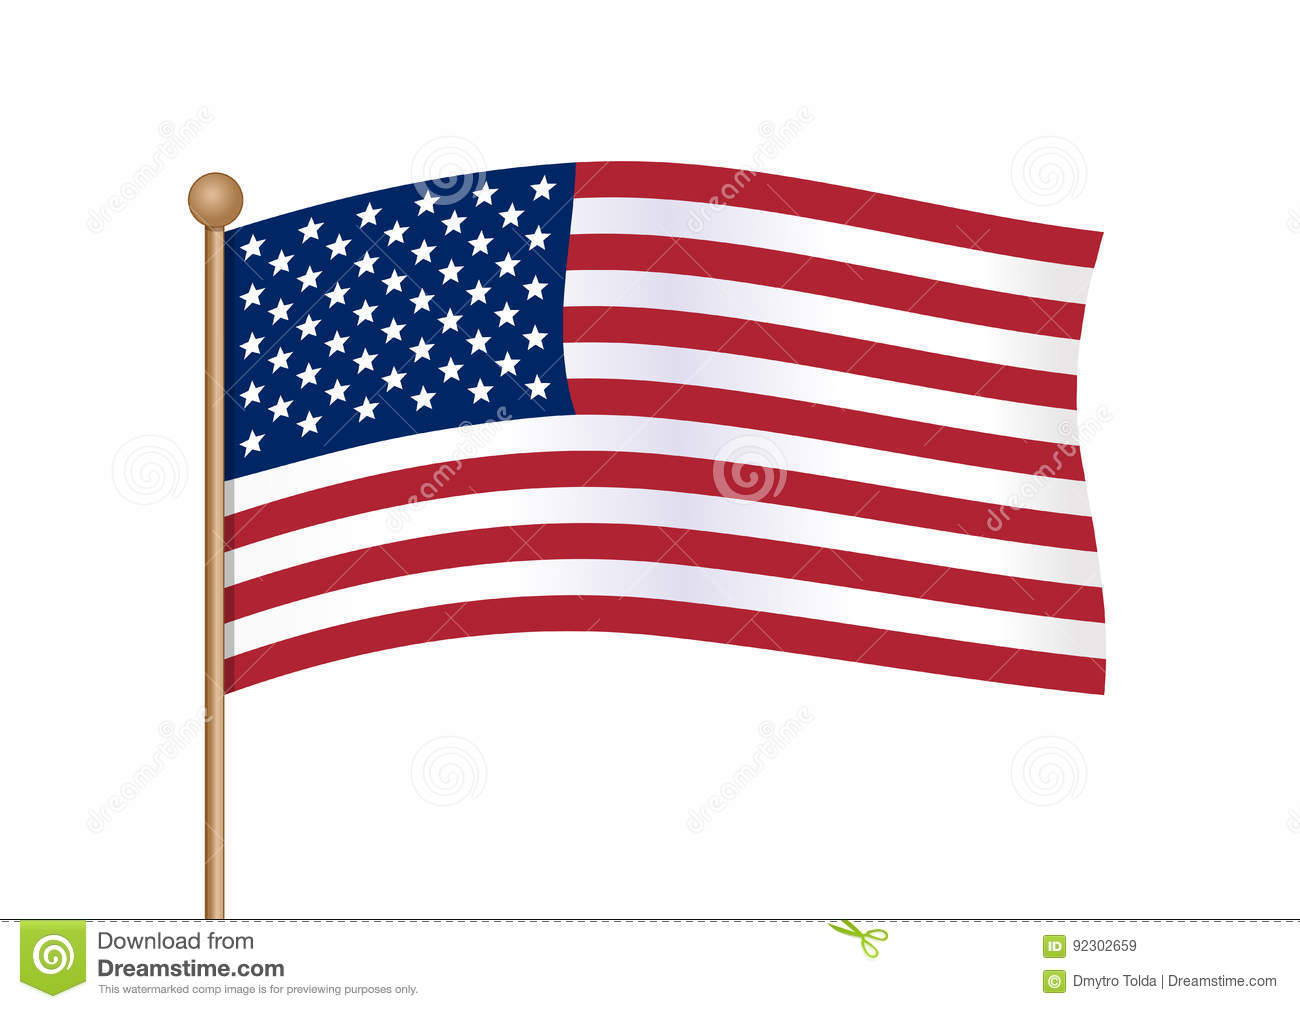 1bef7f1d80e7 Waving american flag on pole. National symbol of United States of America  USA with inclined gold stick. American flag isolated on white background.  Vector ...